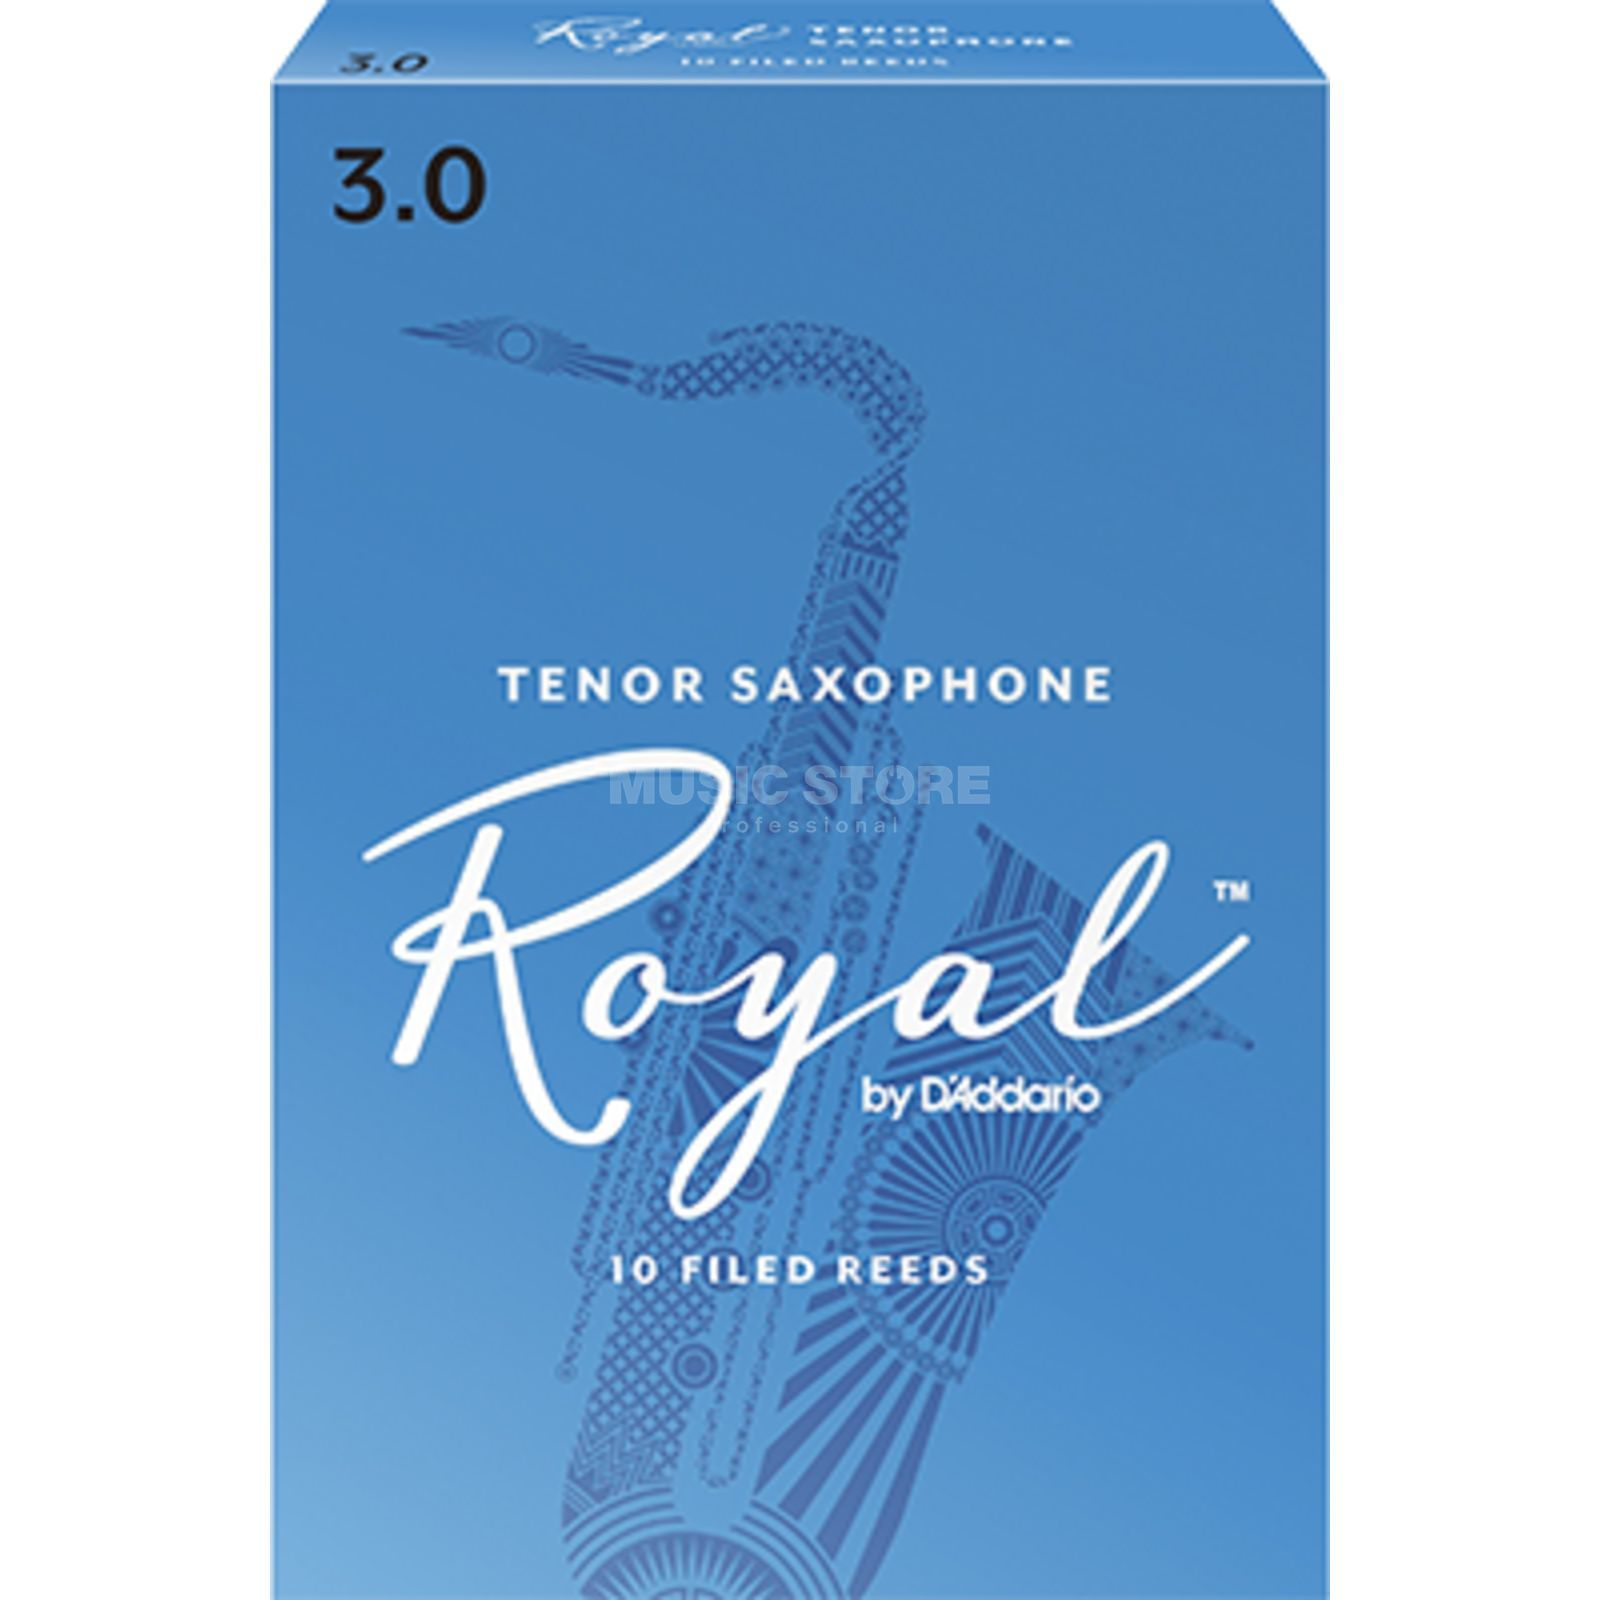 D'Addario Tenor Saxophone Reeds 3 Box of 10 Изображение товара